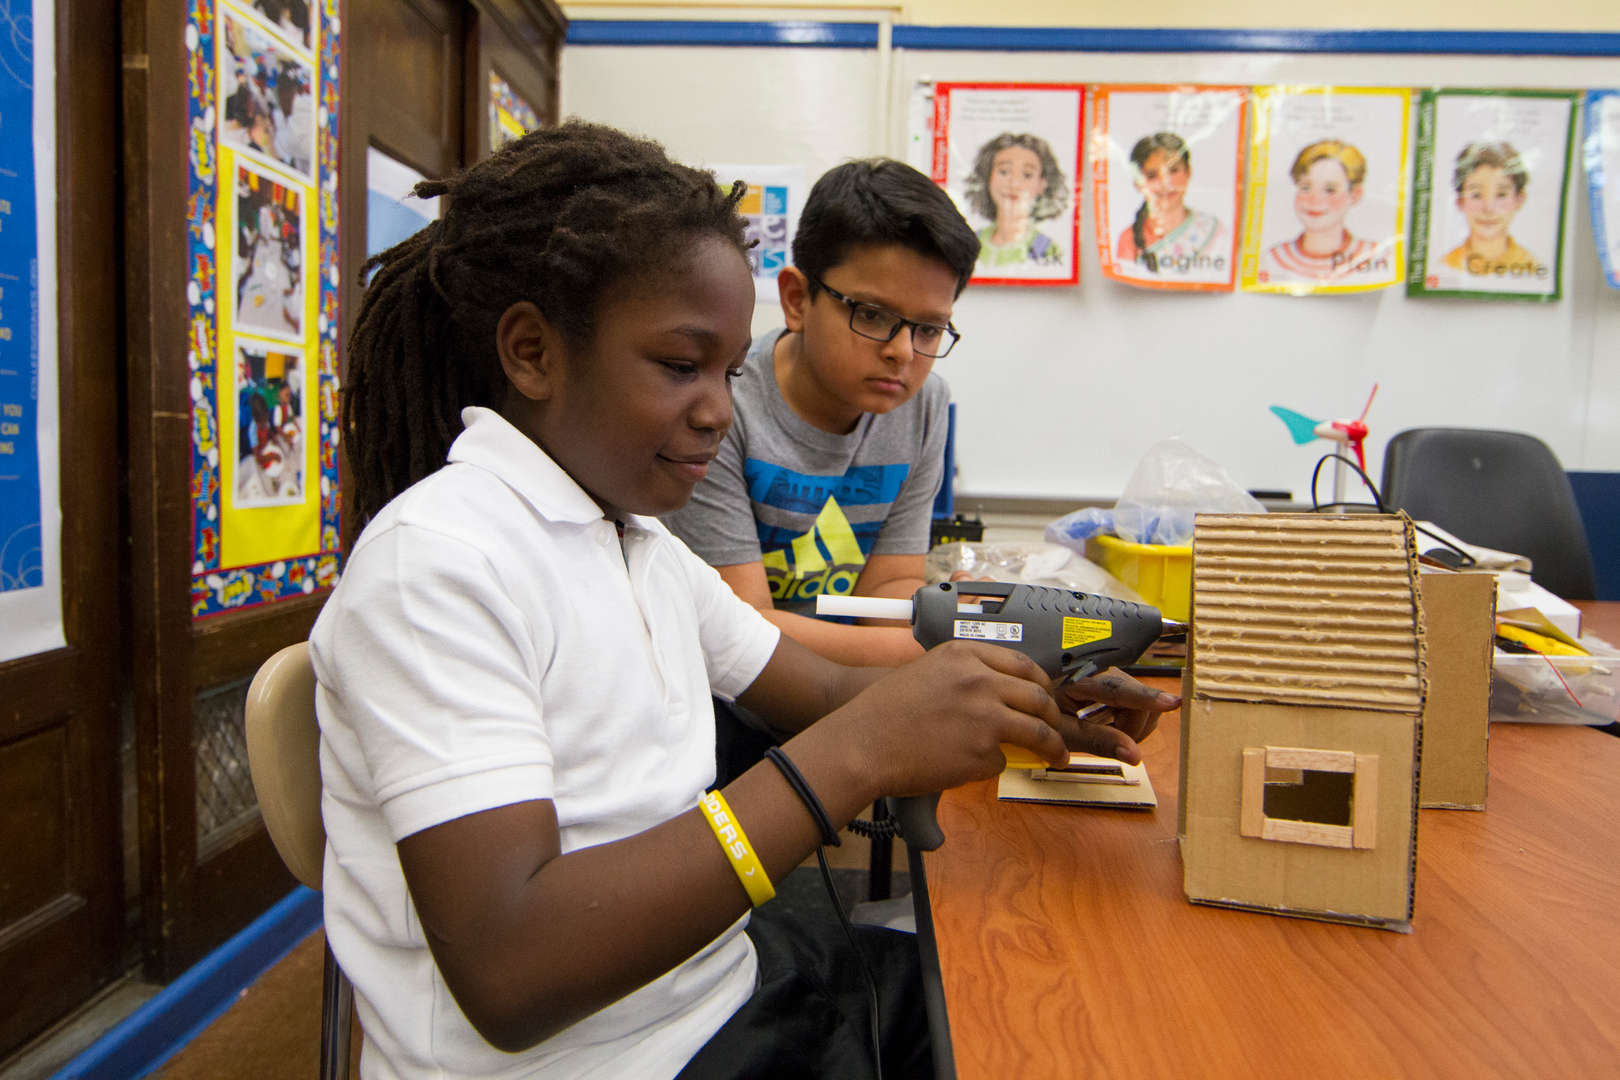 Students using hot glue to construct model house